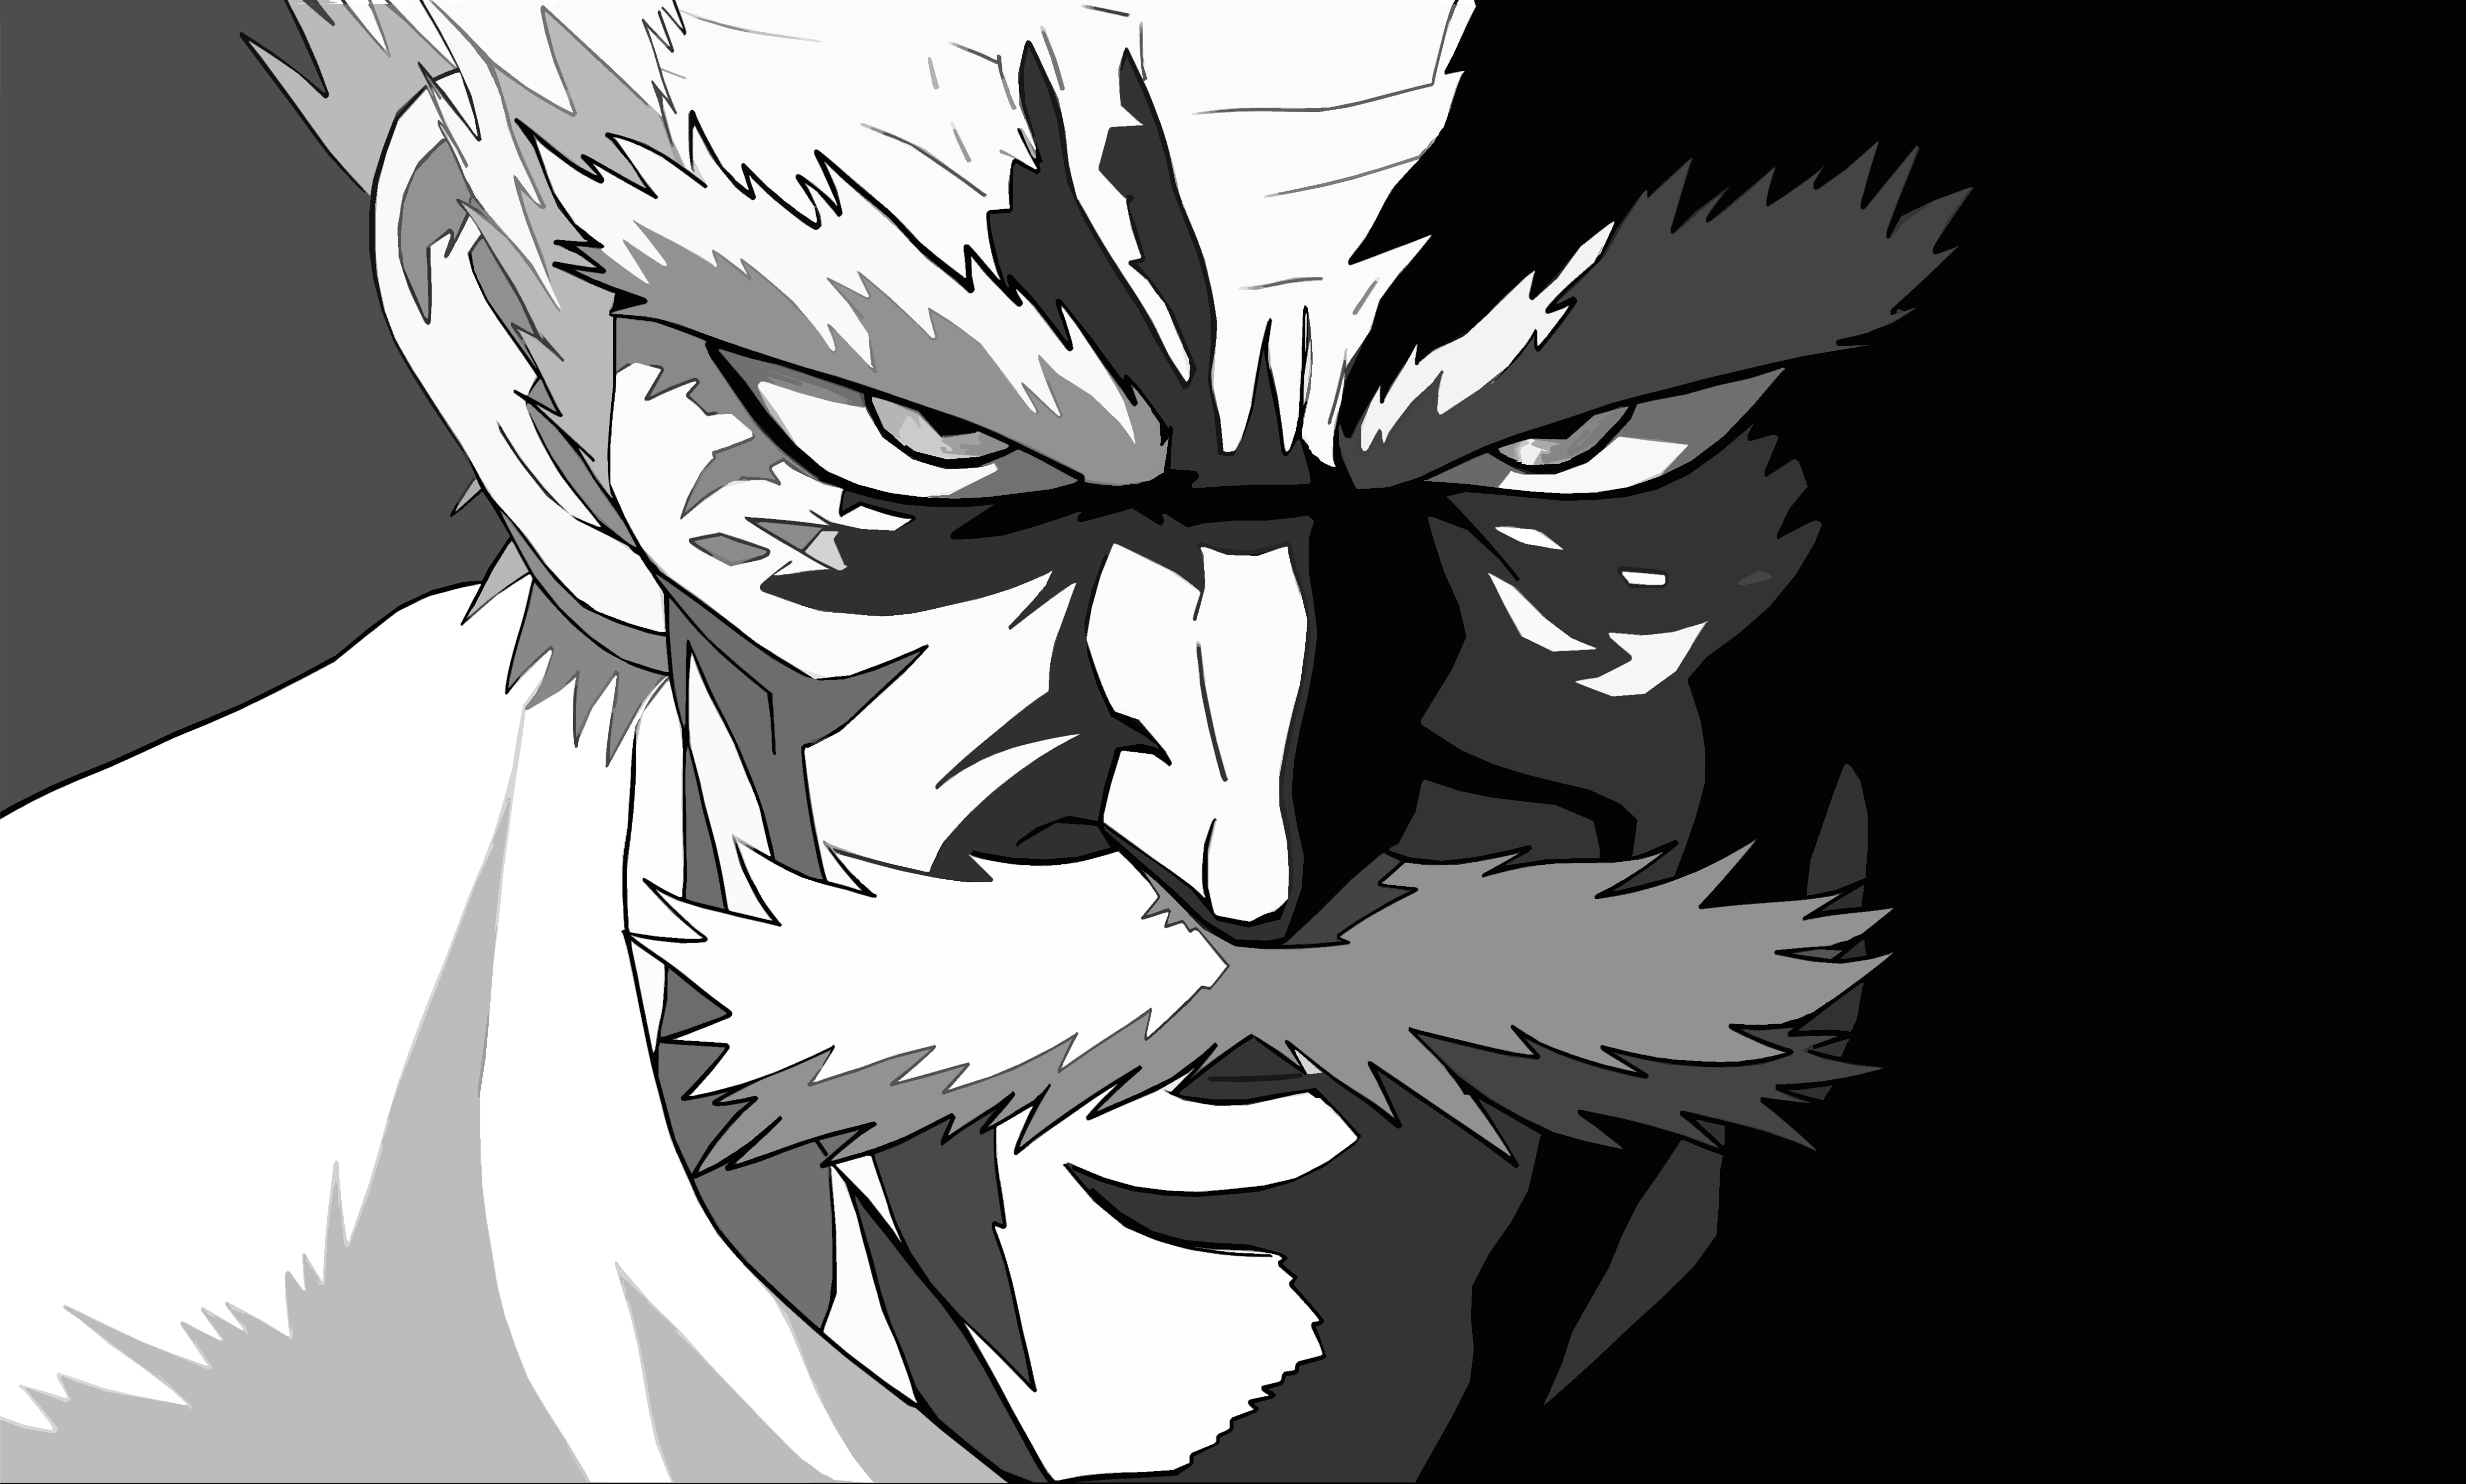 Wallpaper Silver Fang: One-Punch Man 4k Ultra HD Wallpaper And Background Image